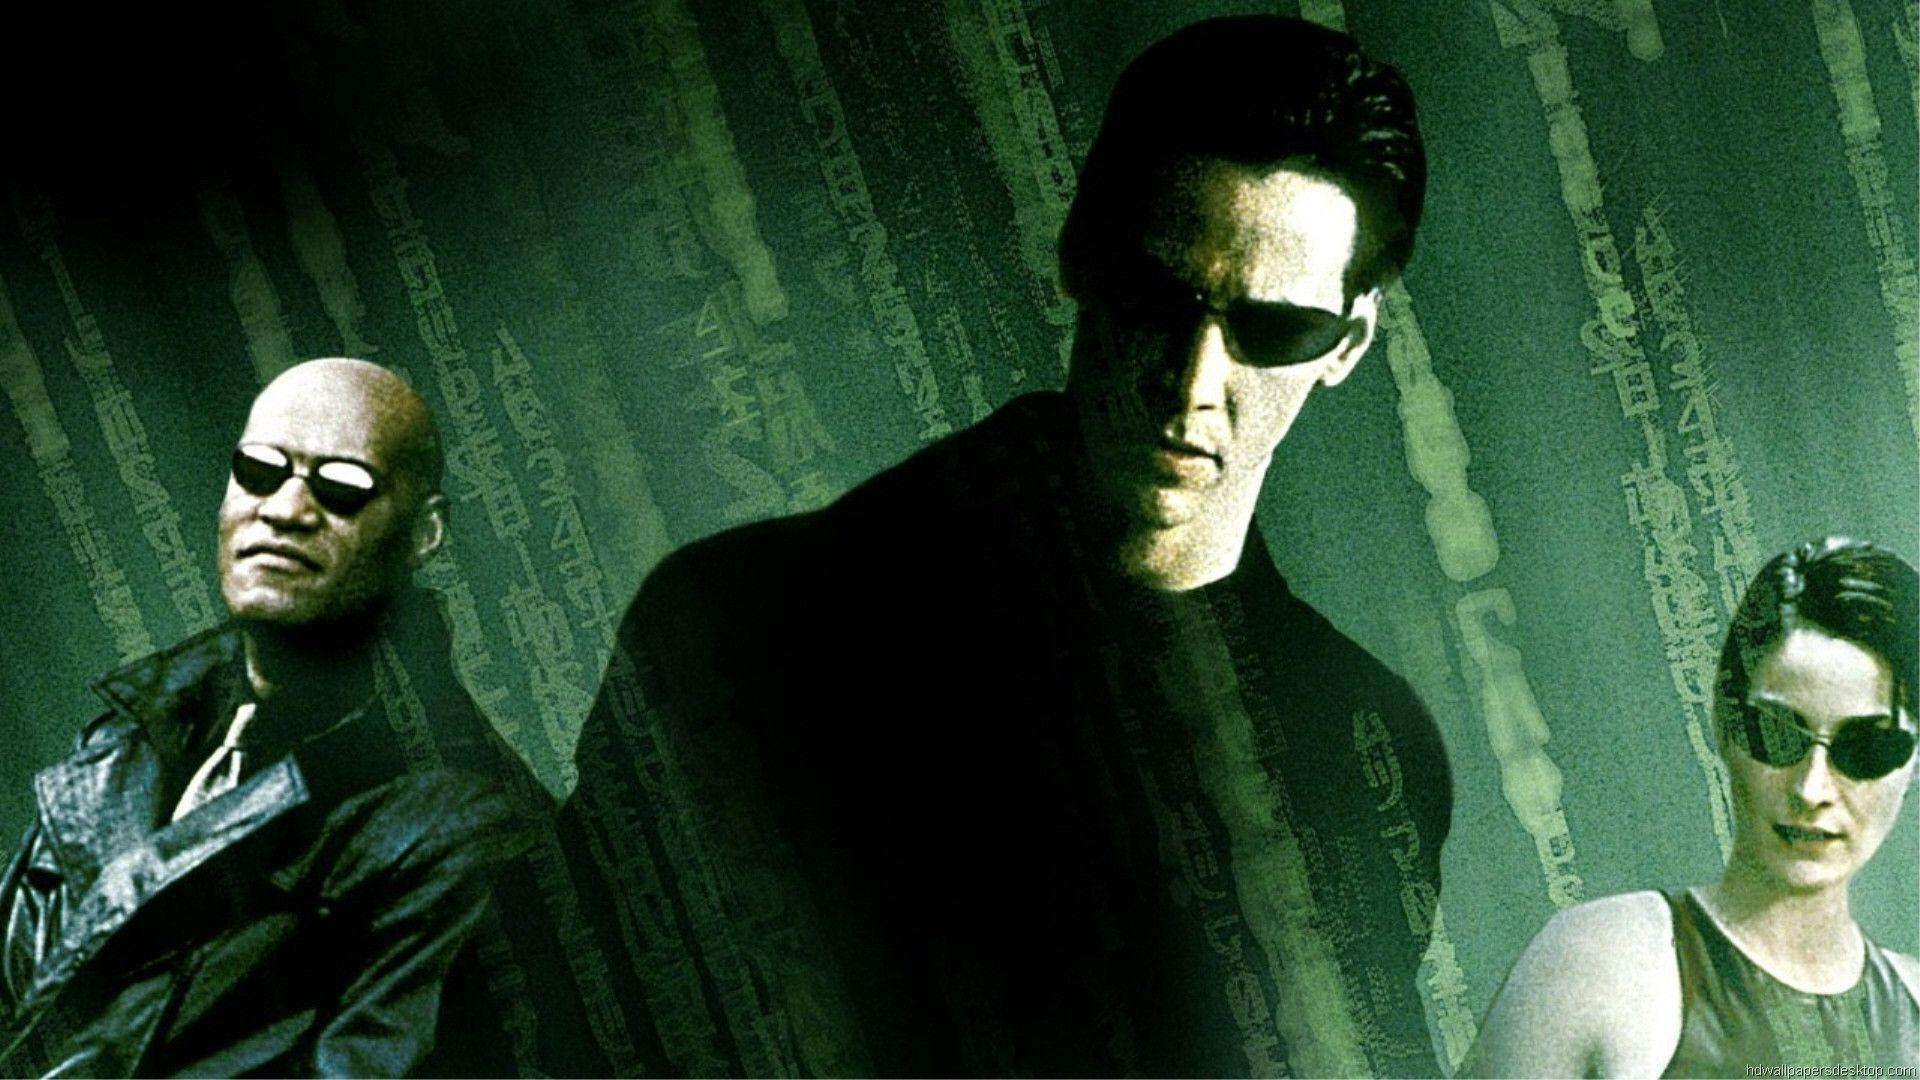 The Matrix (1999) Movie Trailer in HD and Wallpapers